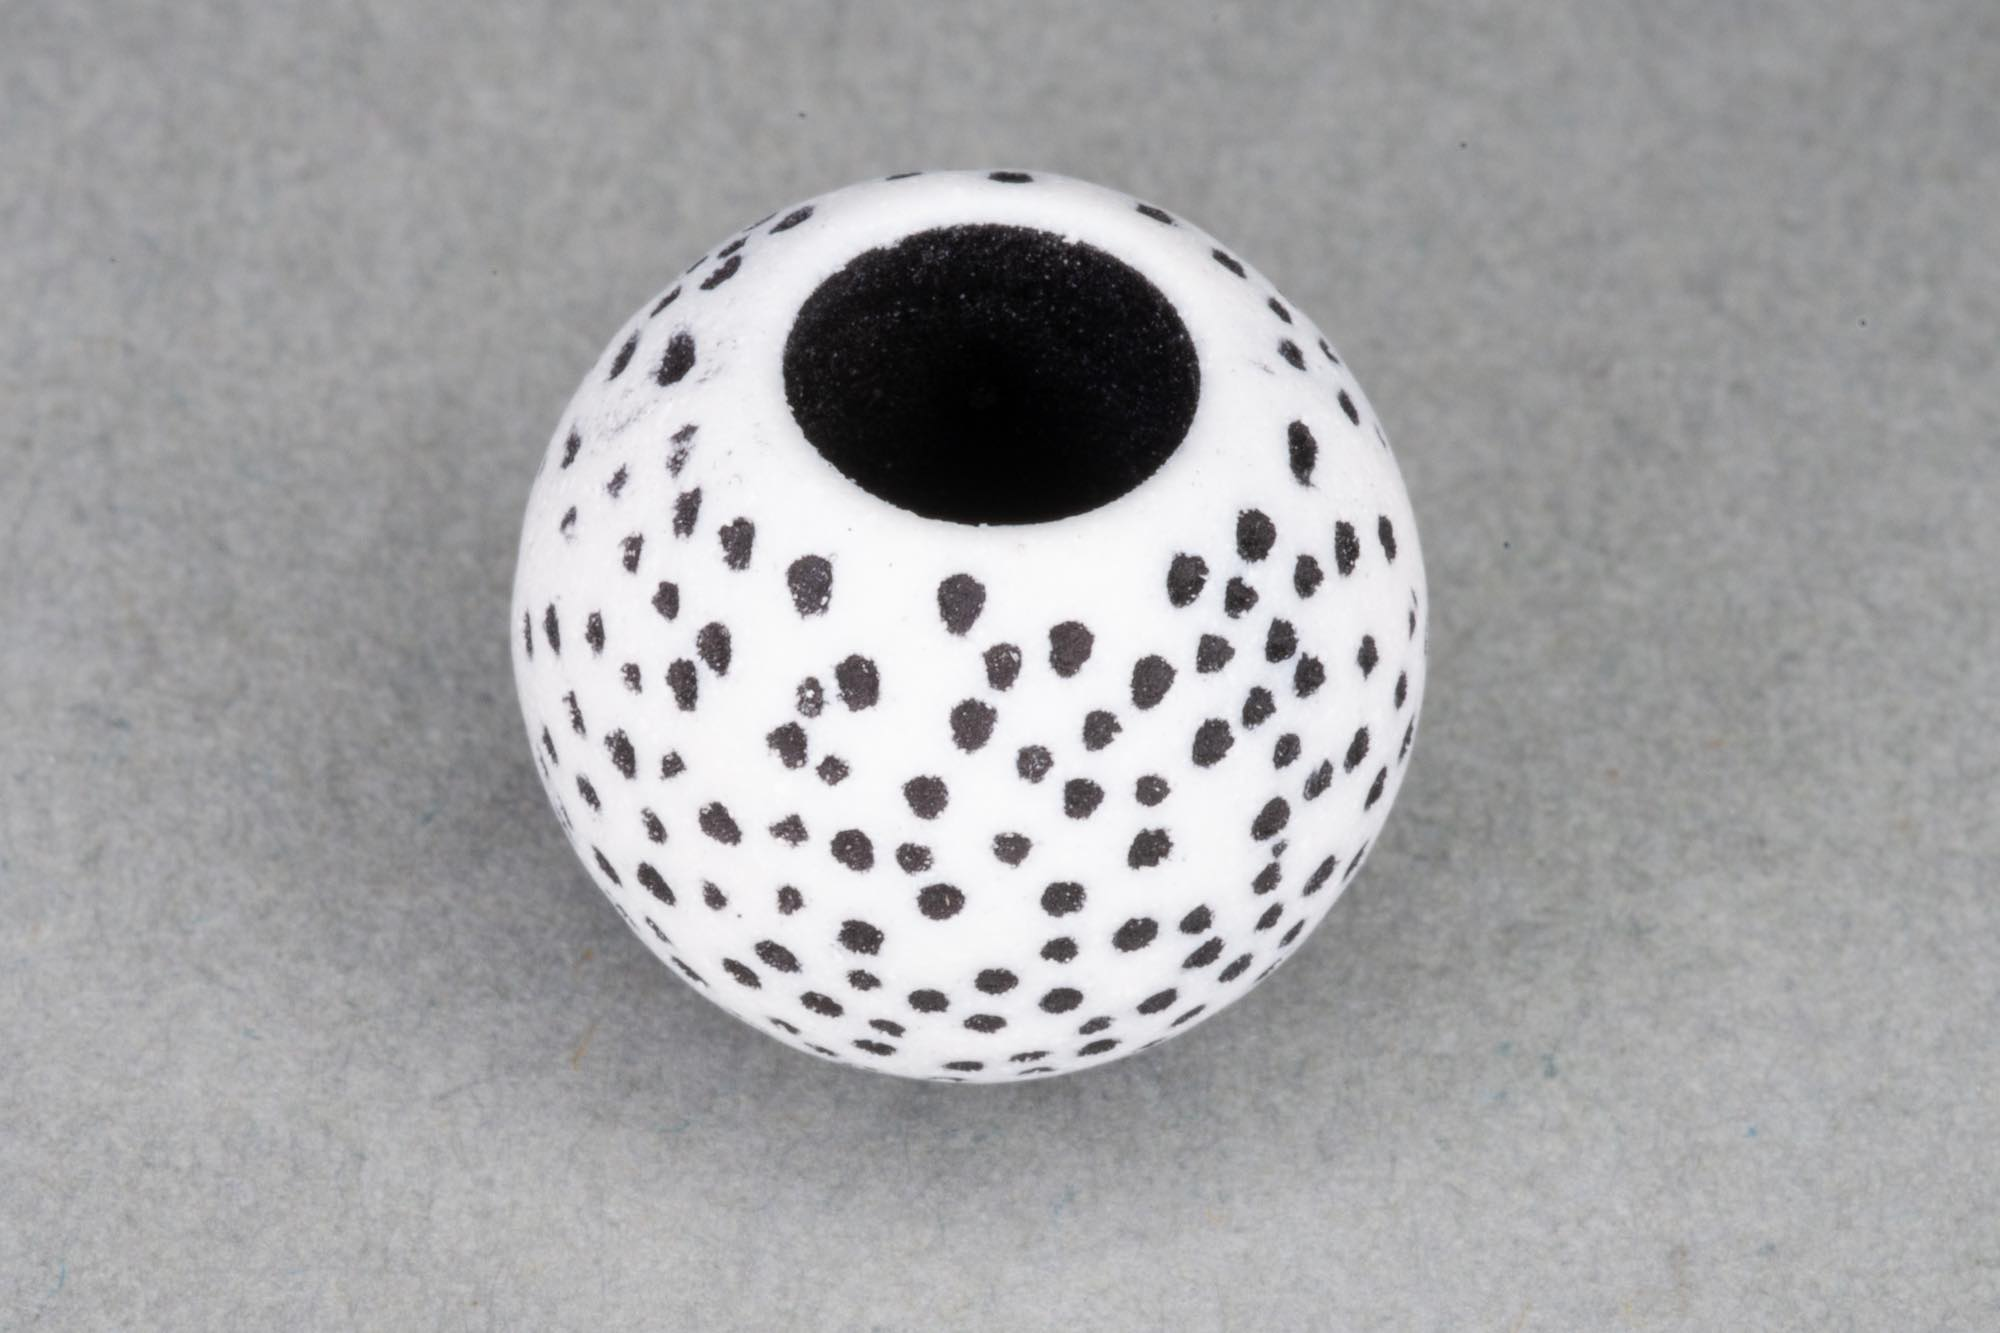 Acrylic Large Hole Bead With Black Speckle Effect, 14x12mm, 6mm hole